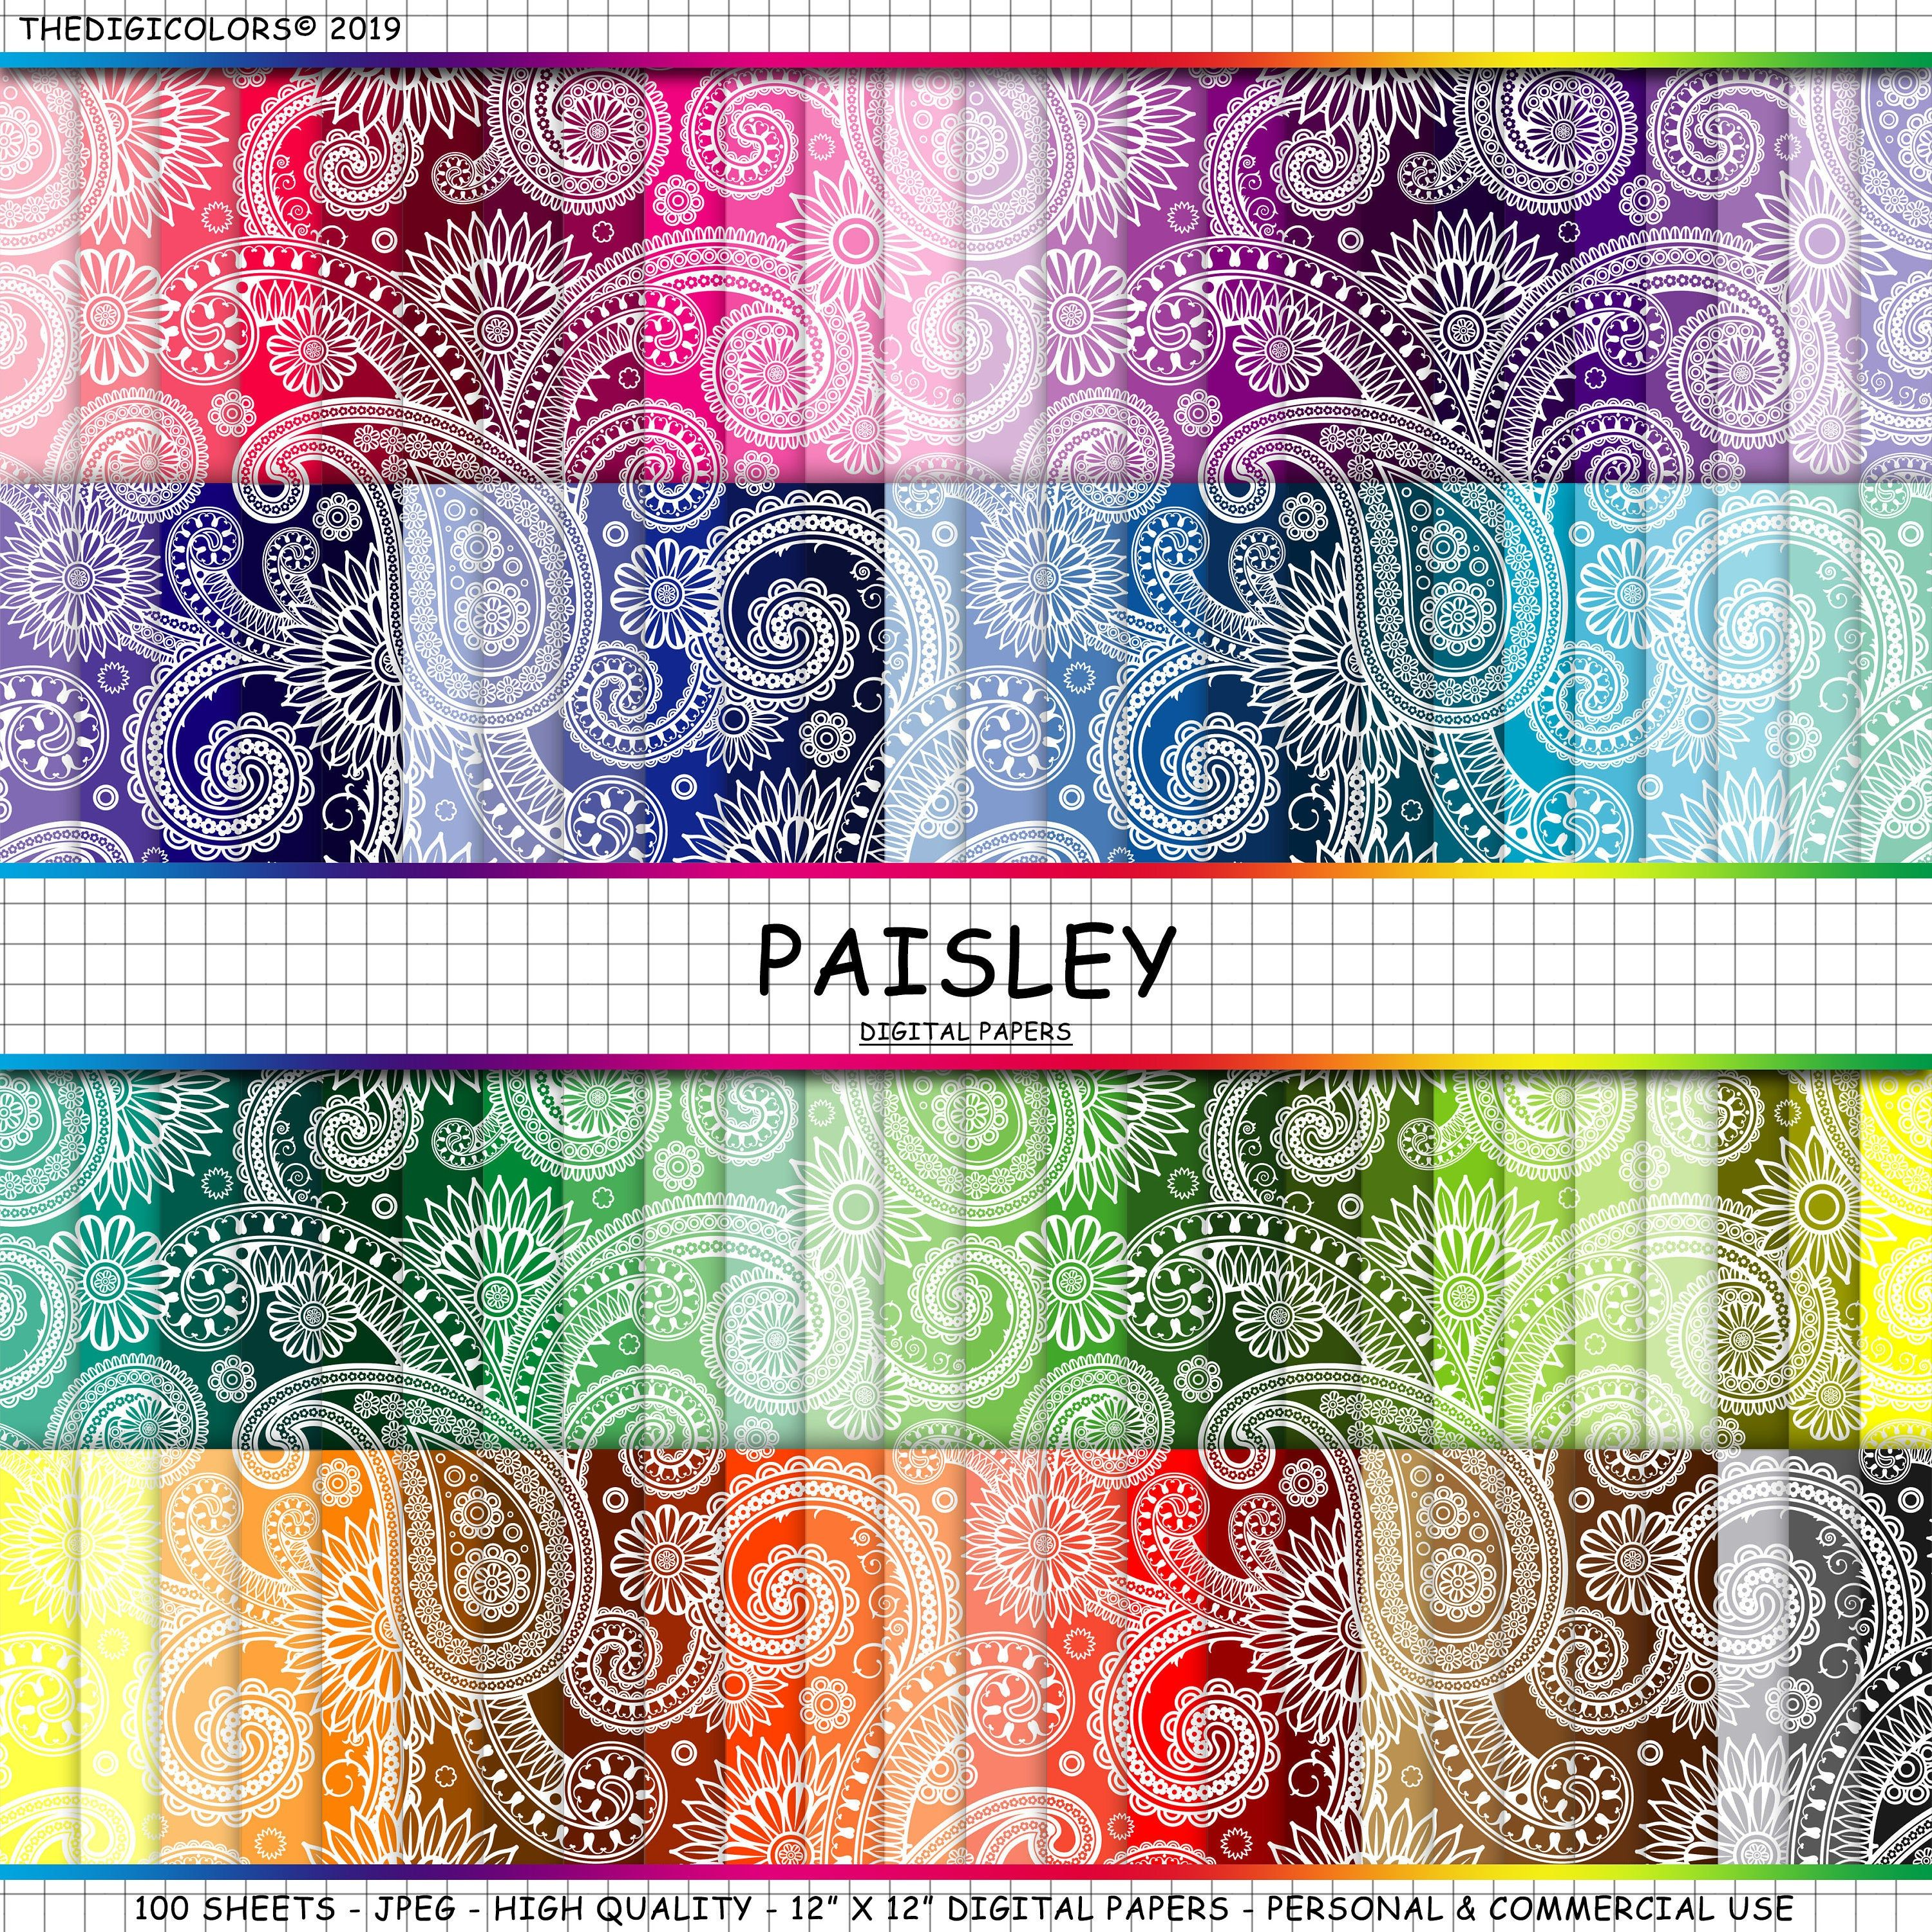 100 Paisley Digital Paper Pack Backgrounds Floral Paisley Papers Floral Paisley Scrapbooking Paper Monochrom Wedding Invitations 300 With Images